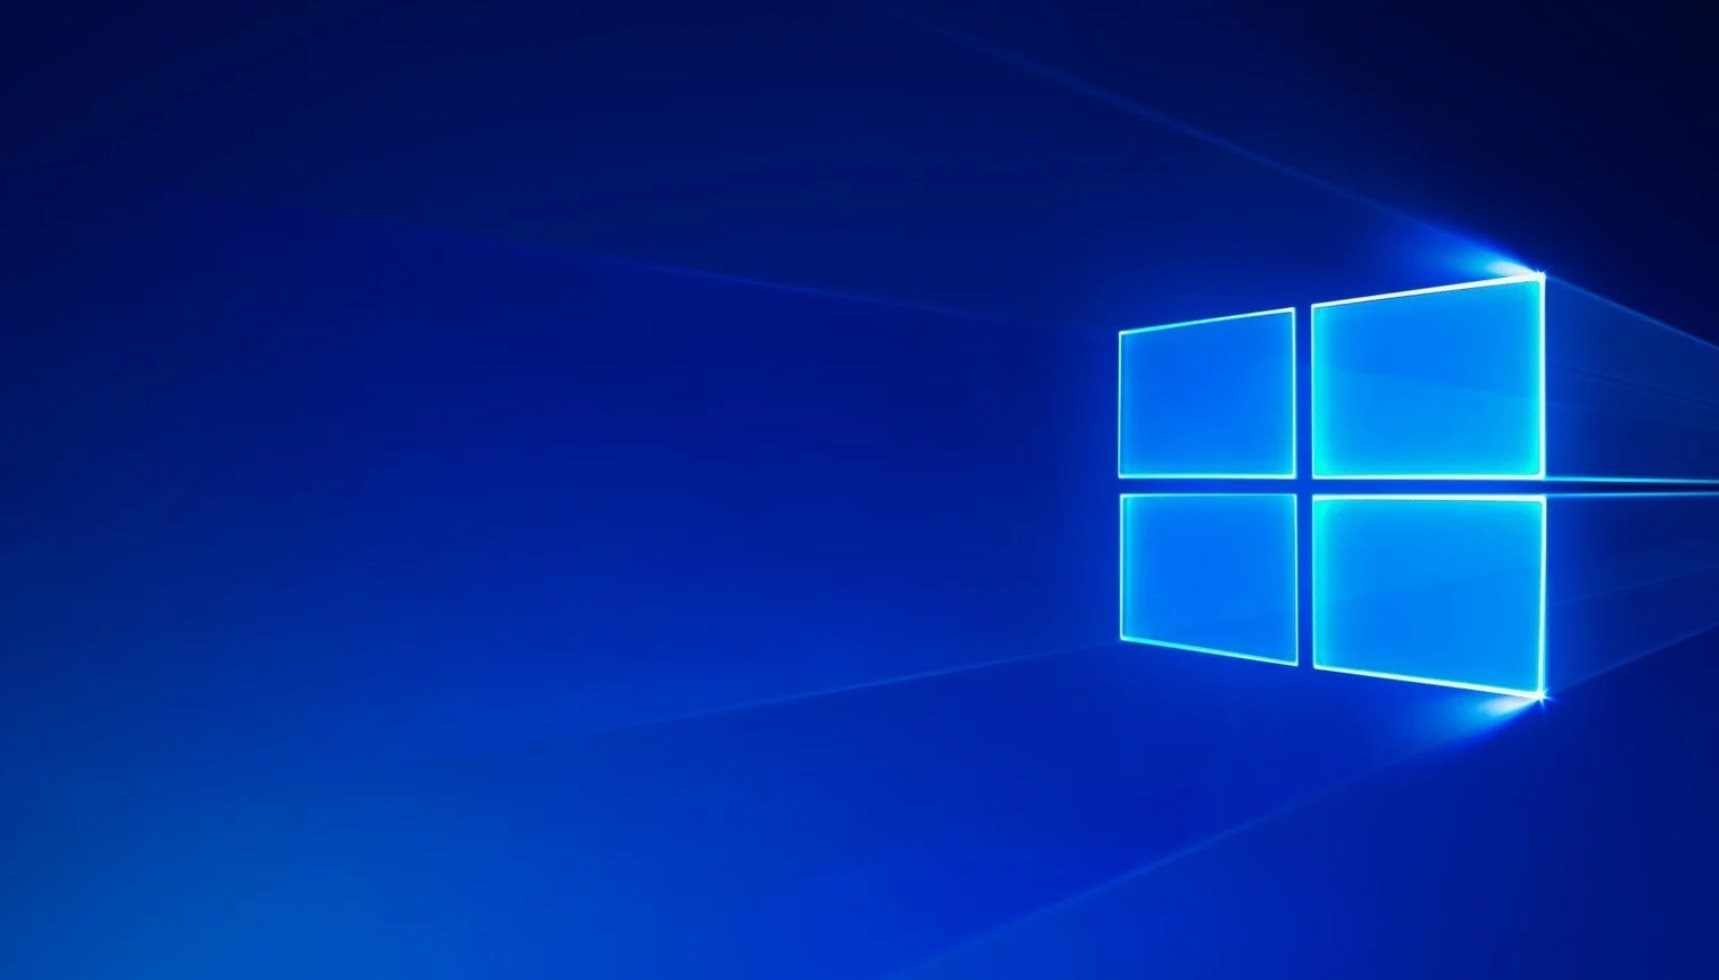 Microsoft offers security update to fix critical issue in older Windows systems